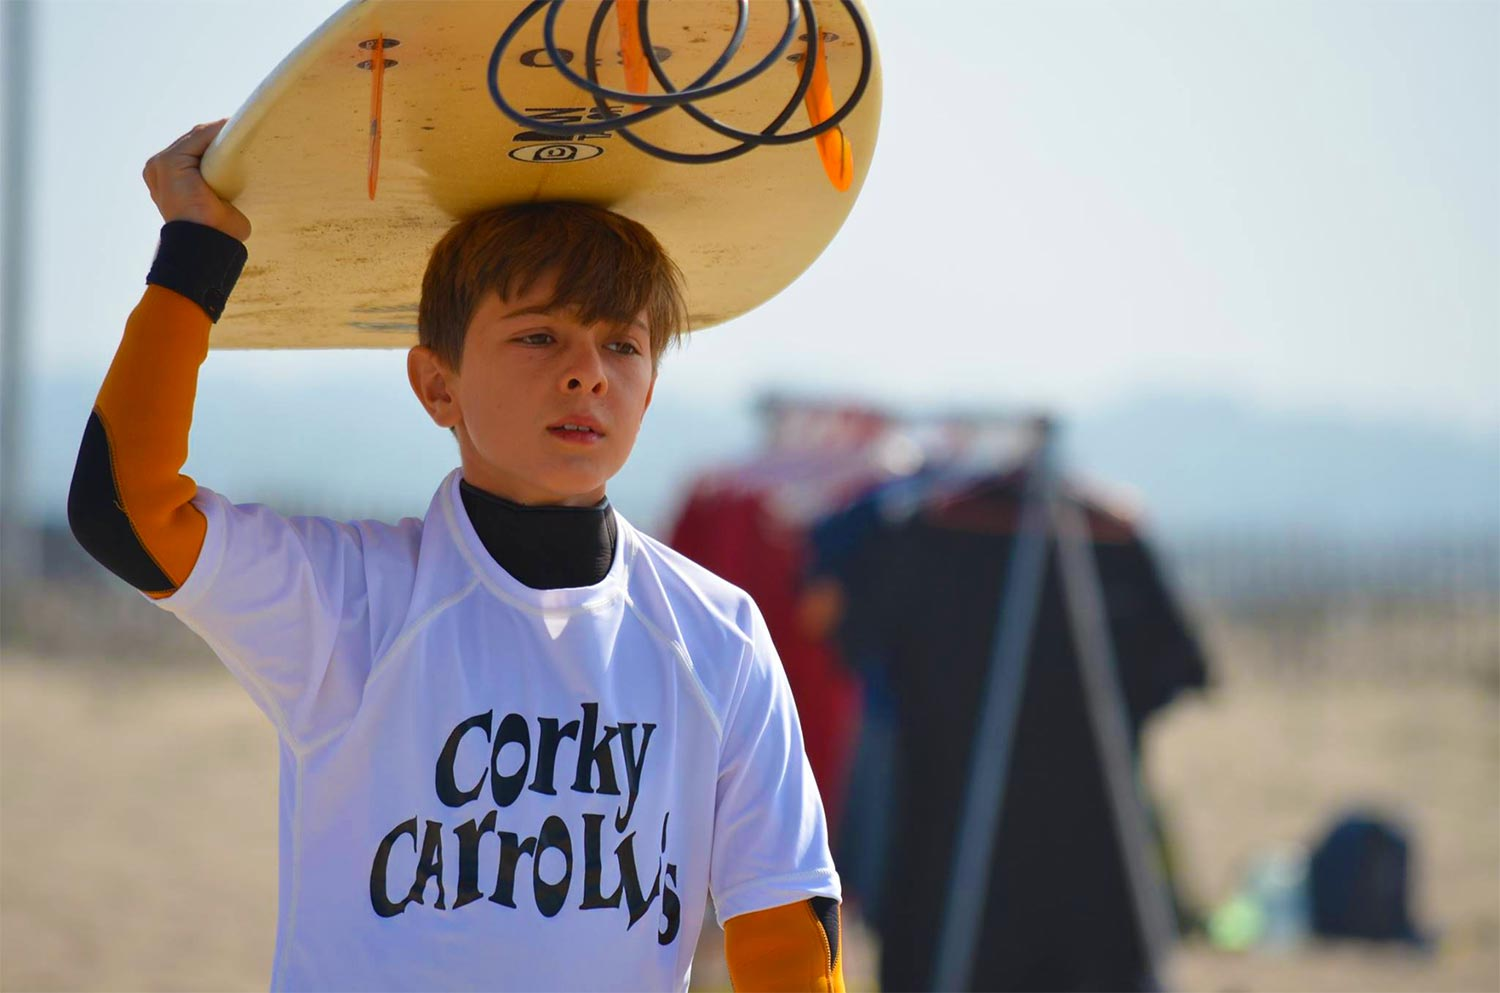 Surfboard Rentals Huntington Beach Corky Carroll's Surf School